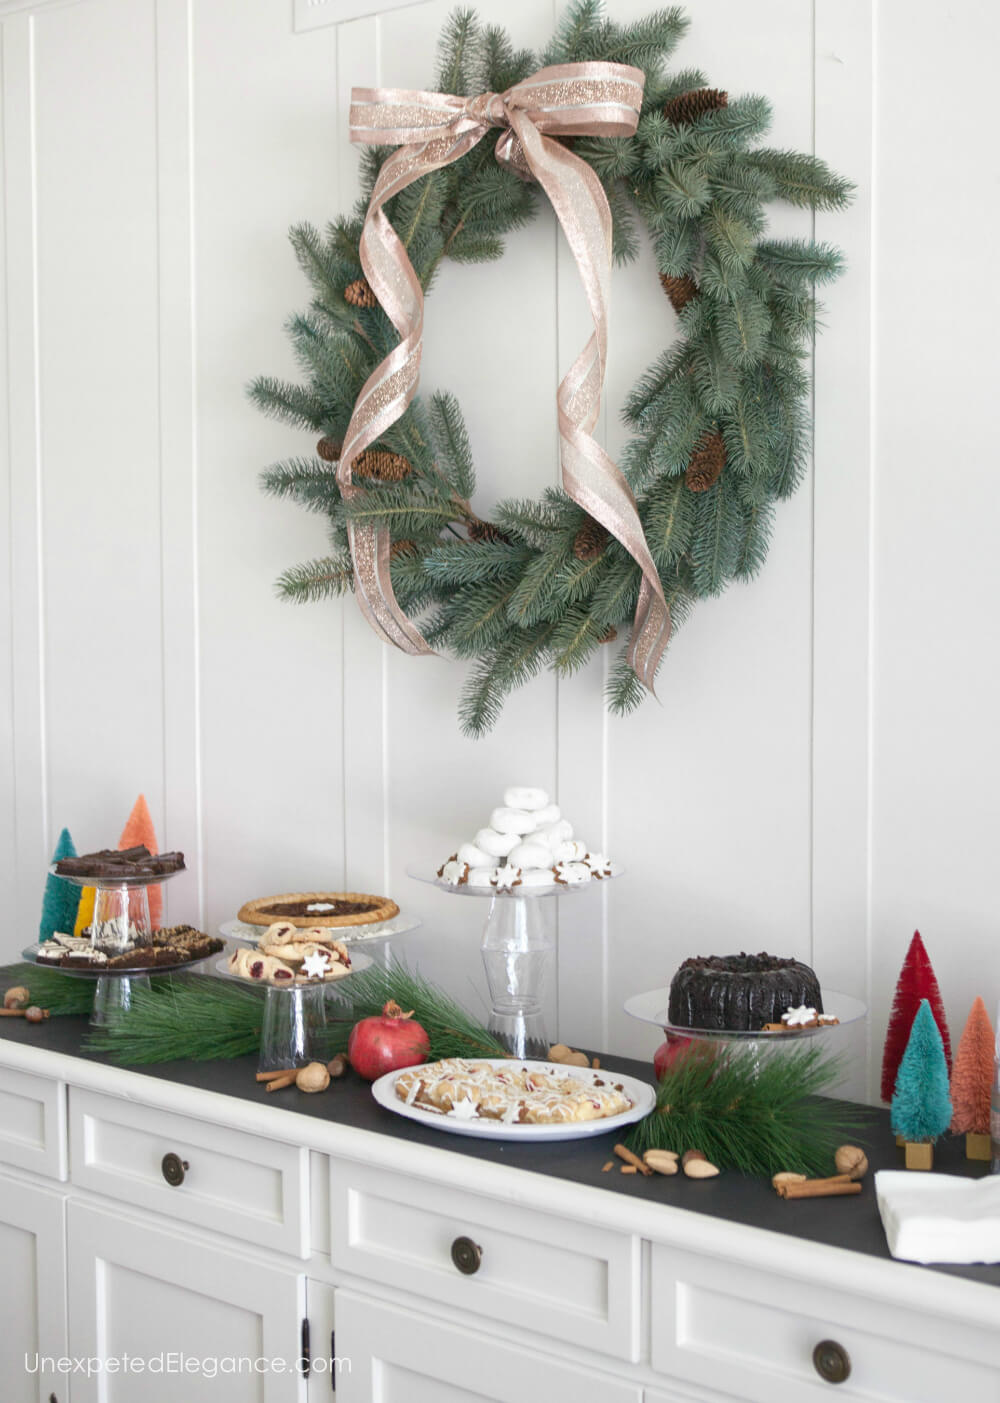 Set up an easy holiday dessert bar this year that your friends and family will love. I'll show you how to keep it simple so you can enjoy the season!